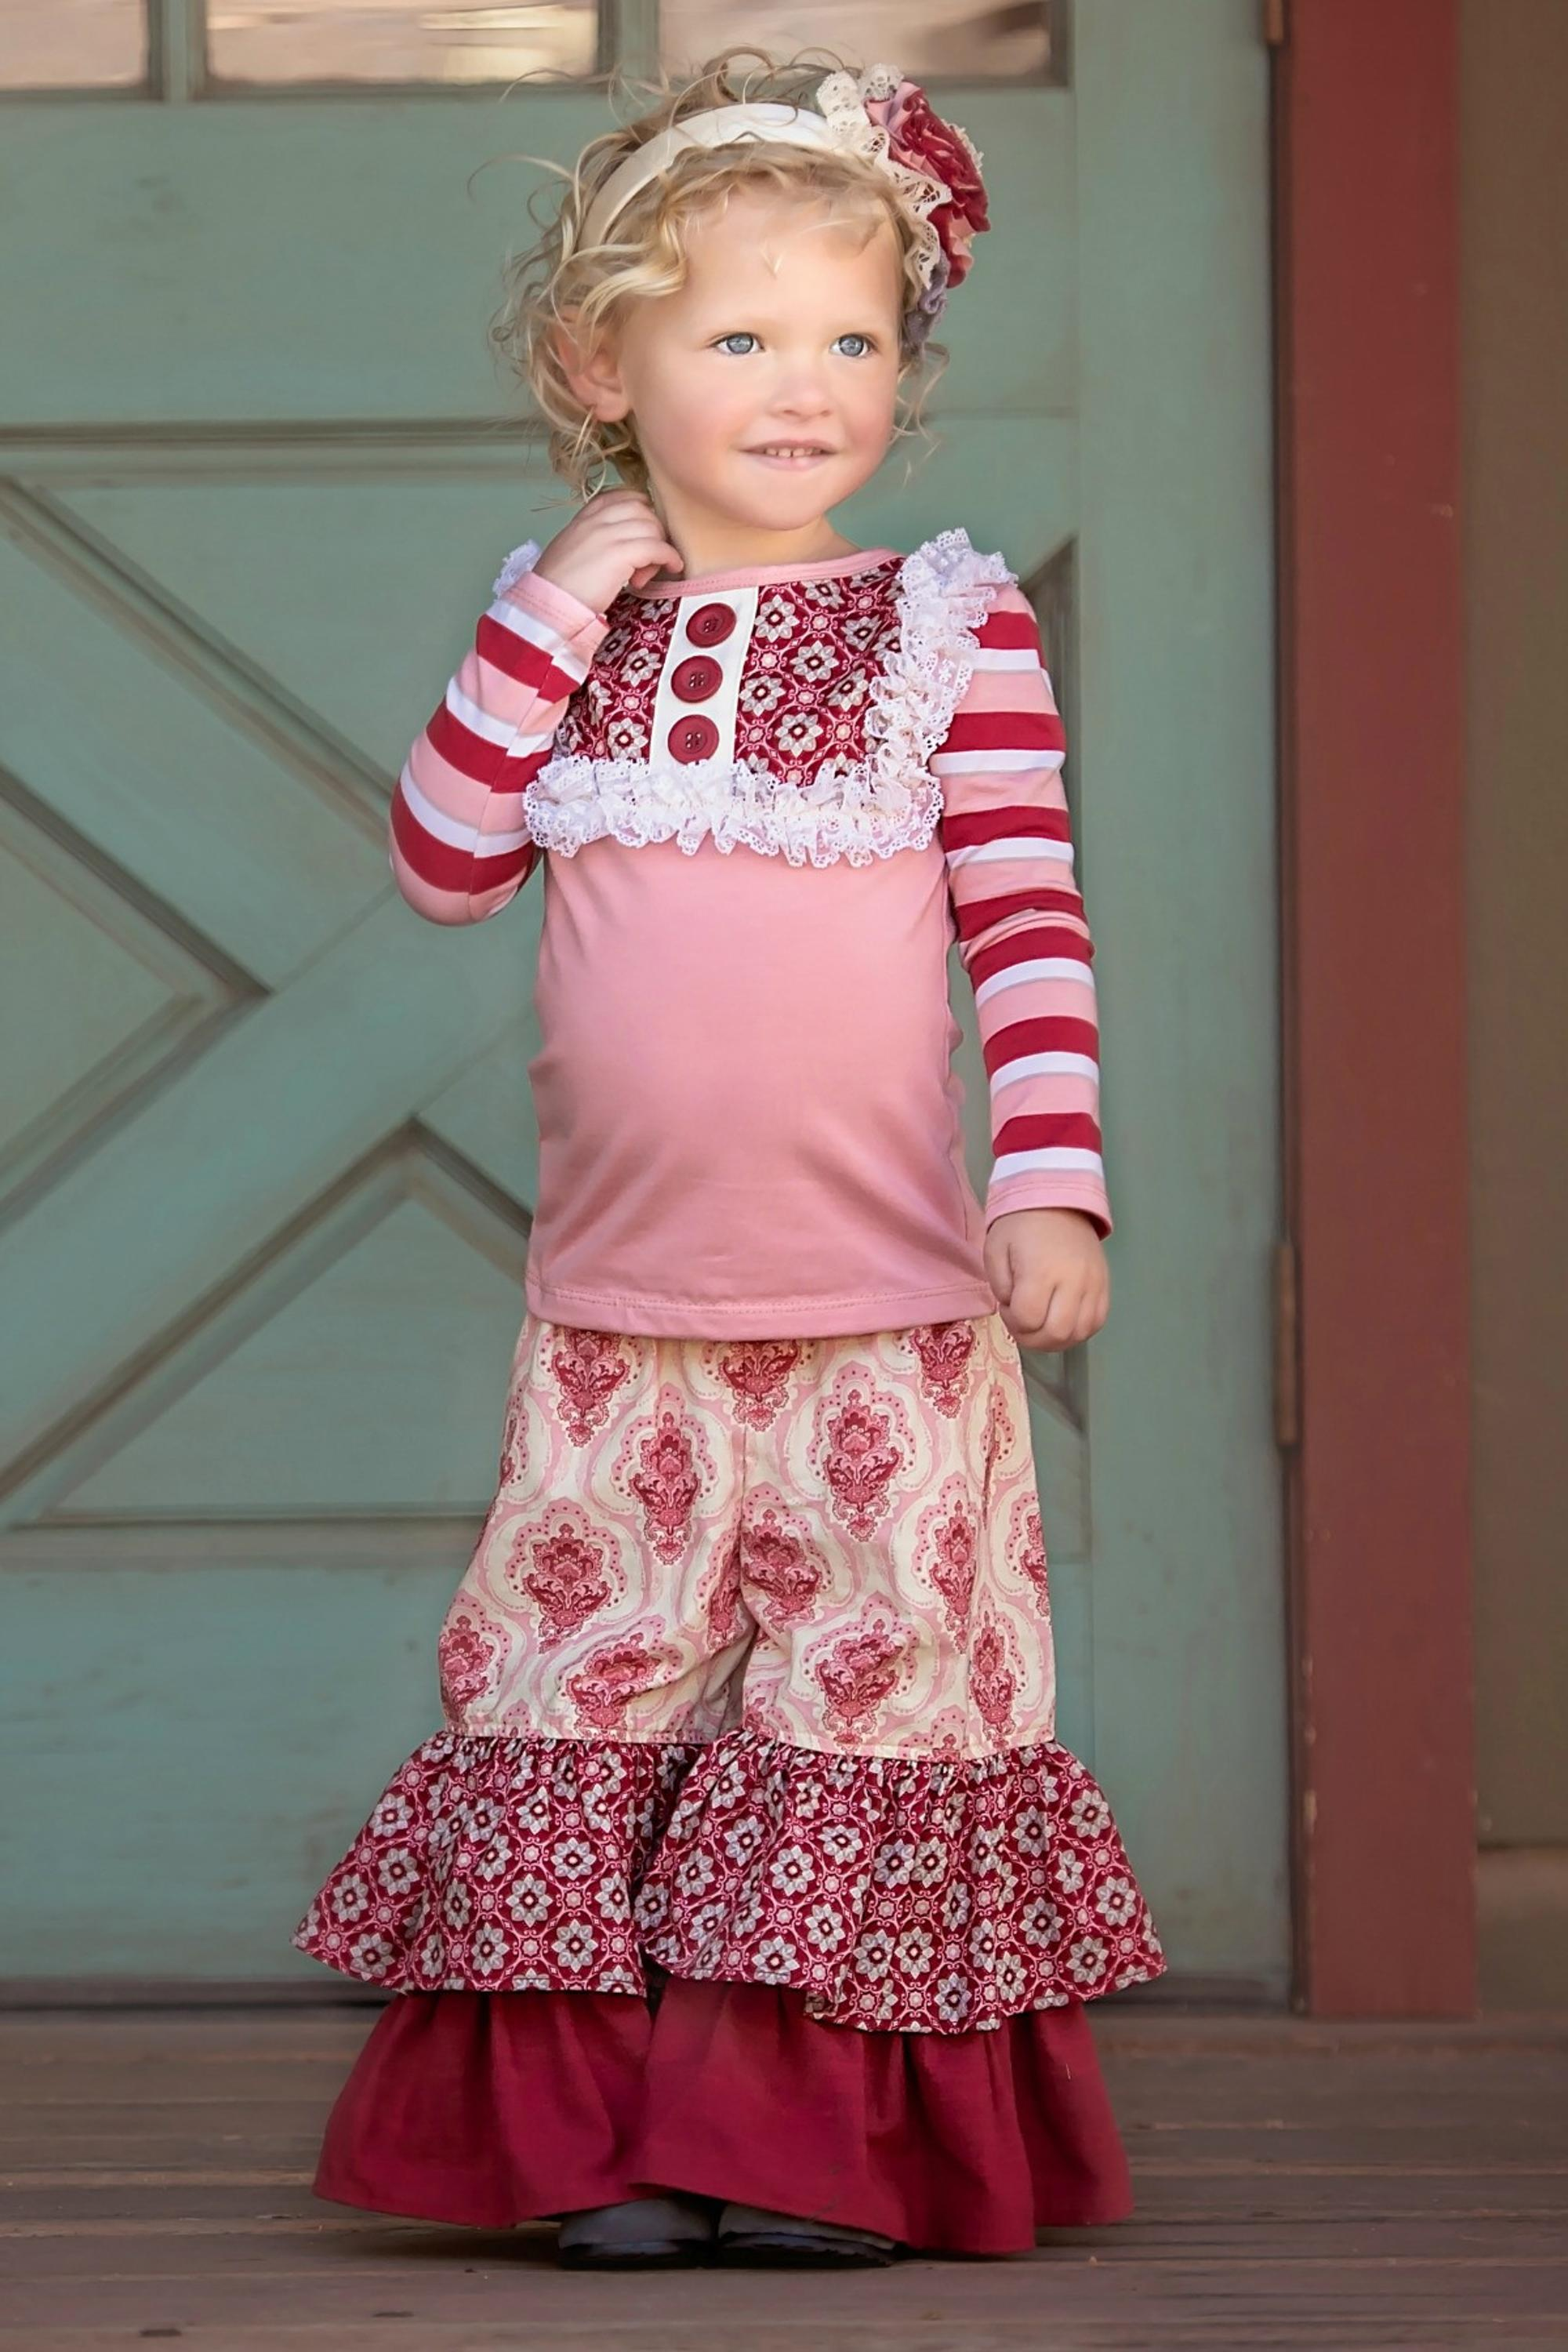 Baby Girls Remake Patchwork Outfits Toddler Sleeveless Floral Ruffle